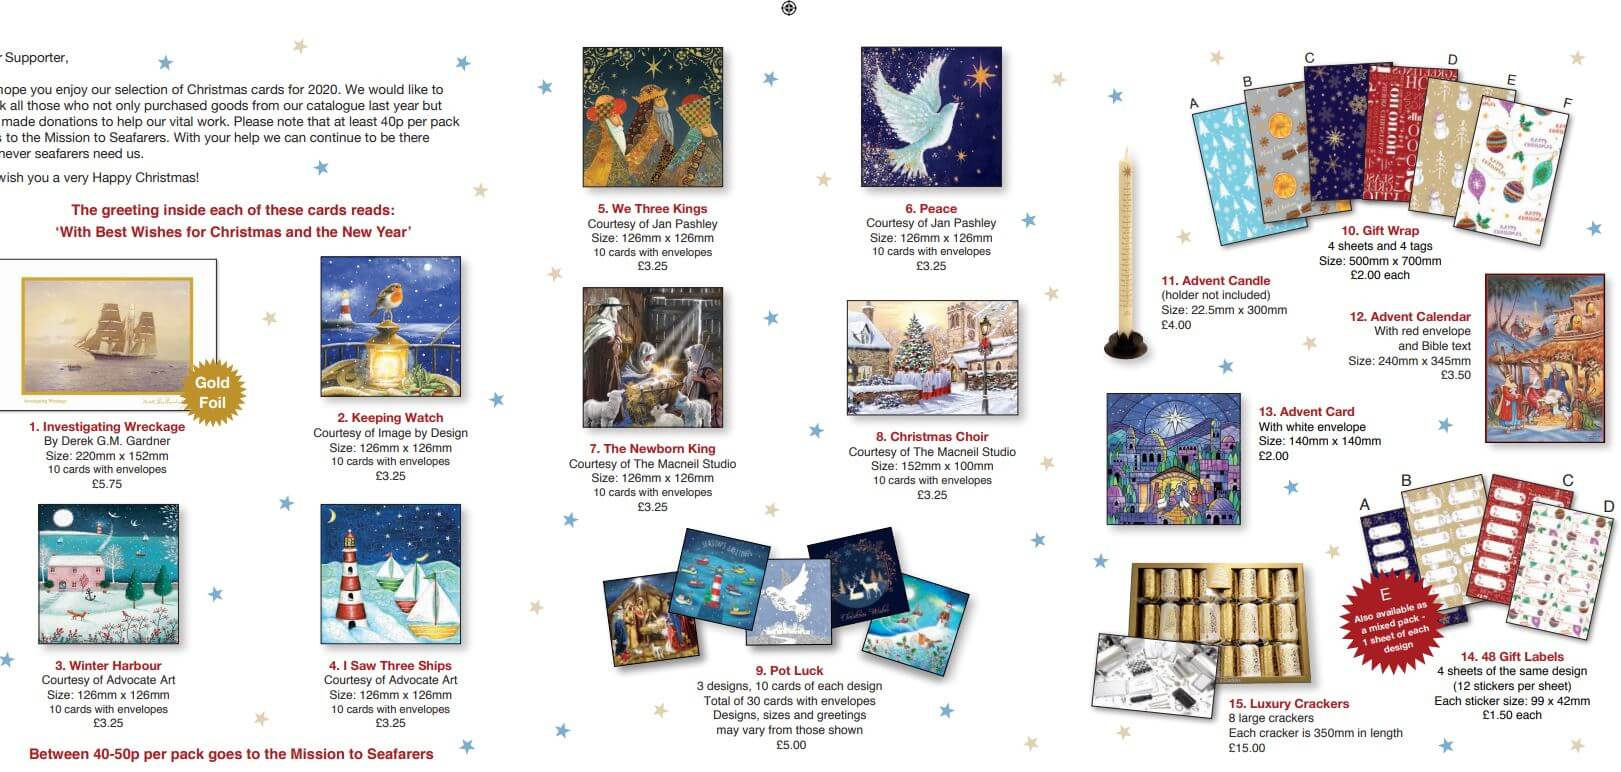 Mission to Seafarers Christmas Cards 2020